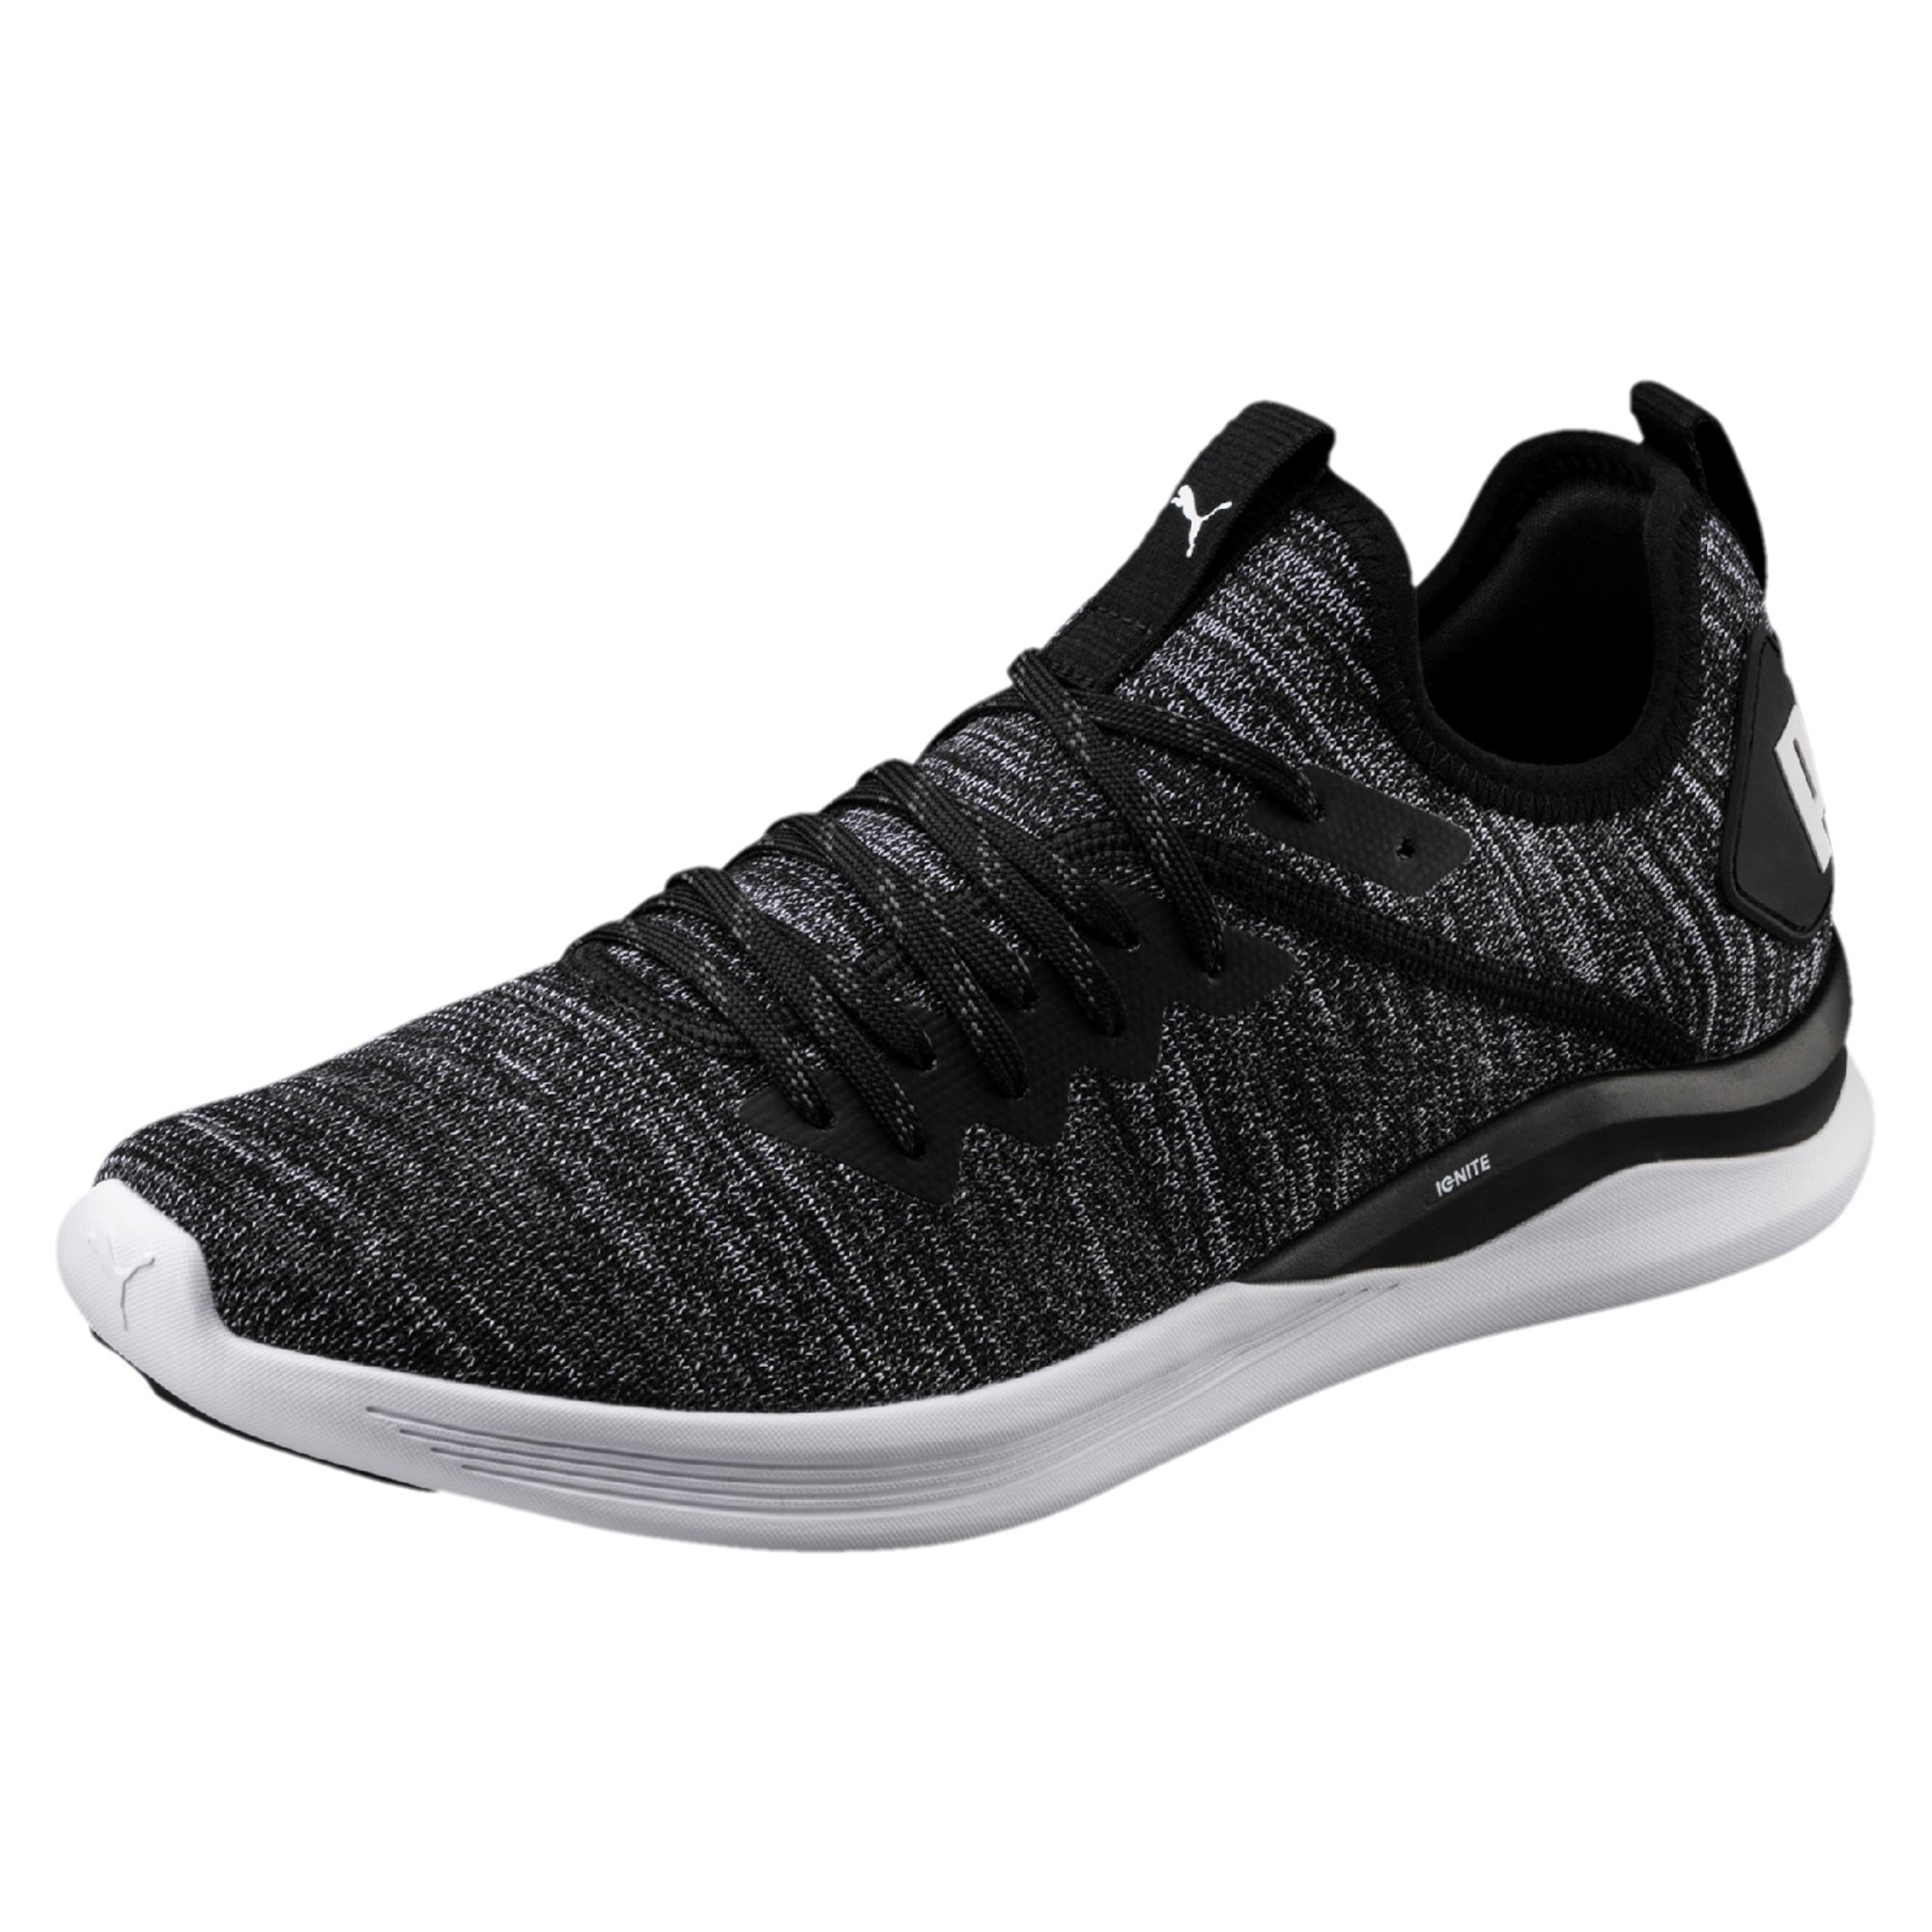 Puma Ignite Flash evoKNIT Shoes